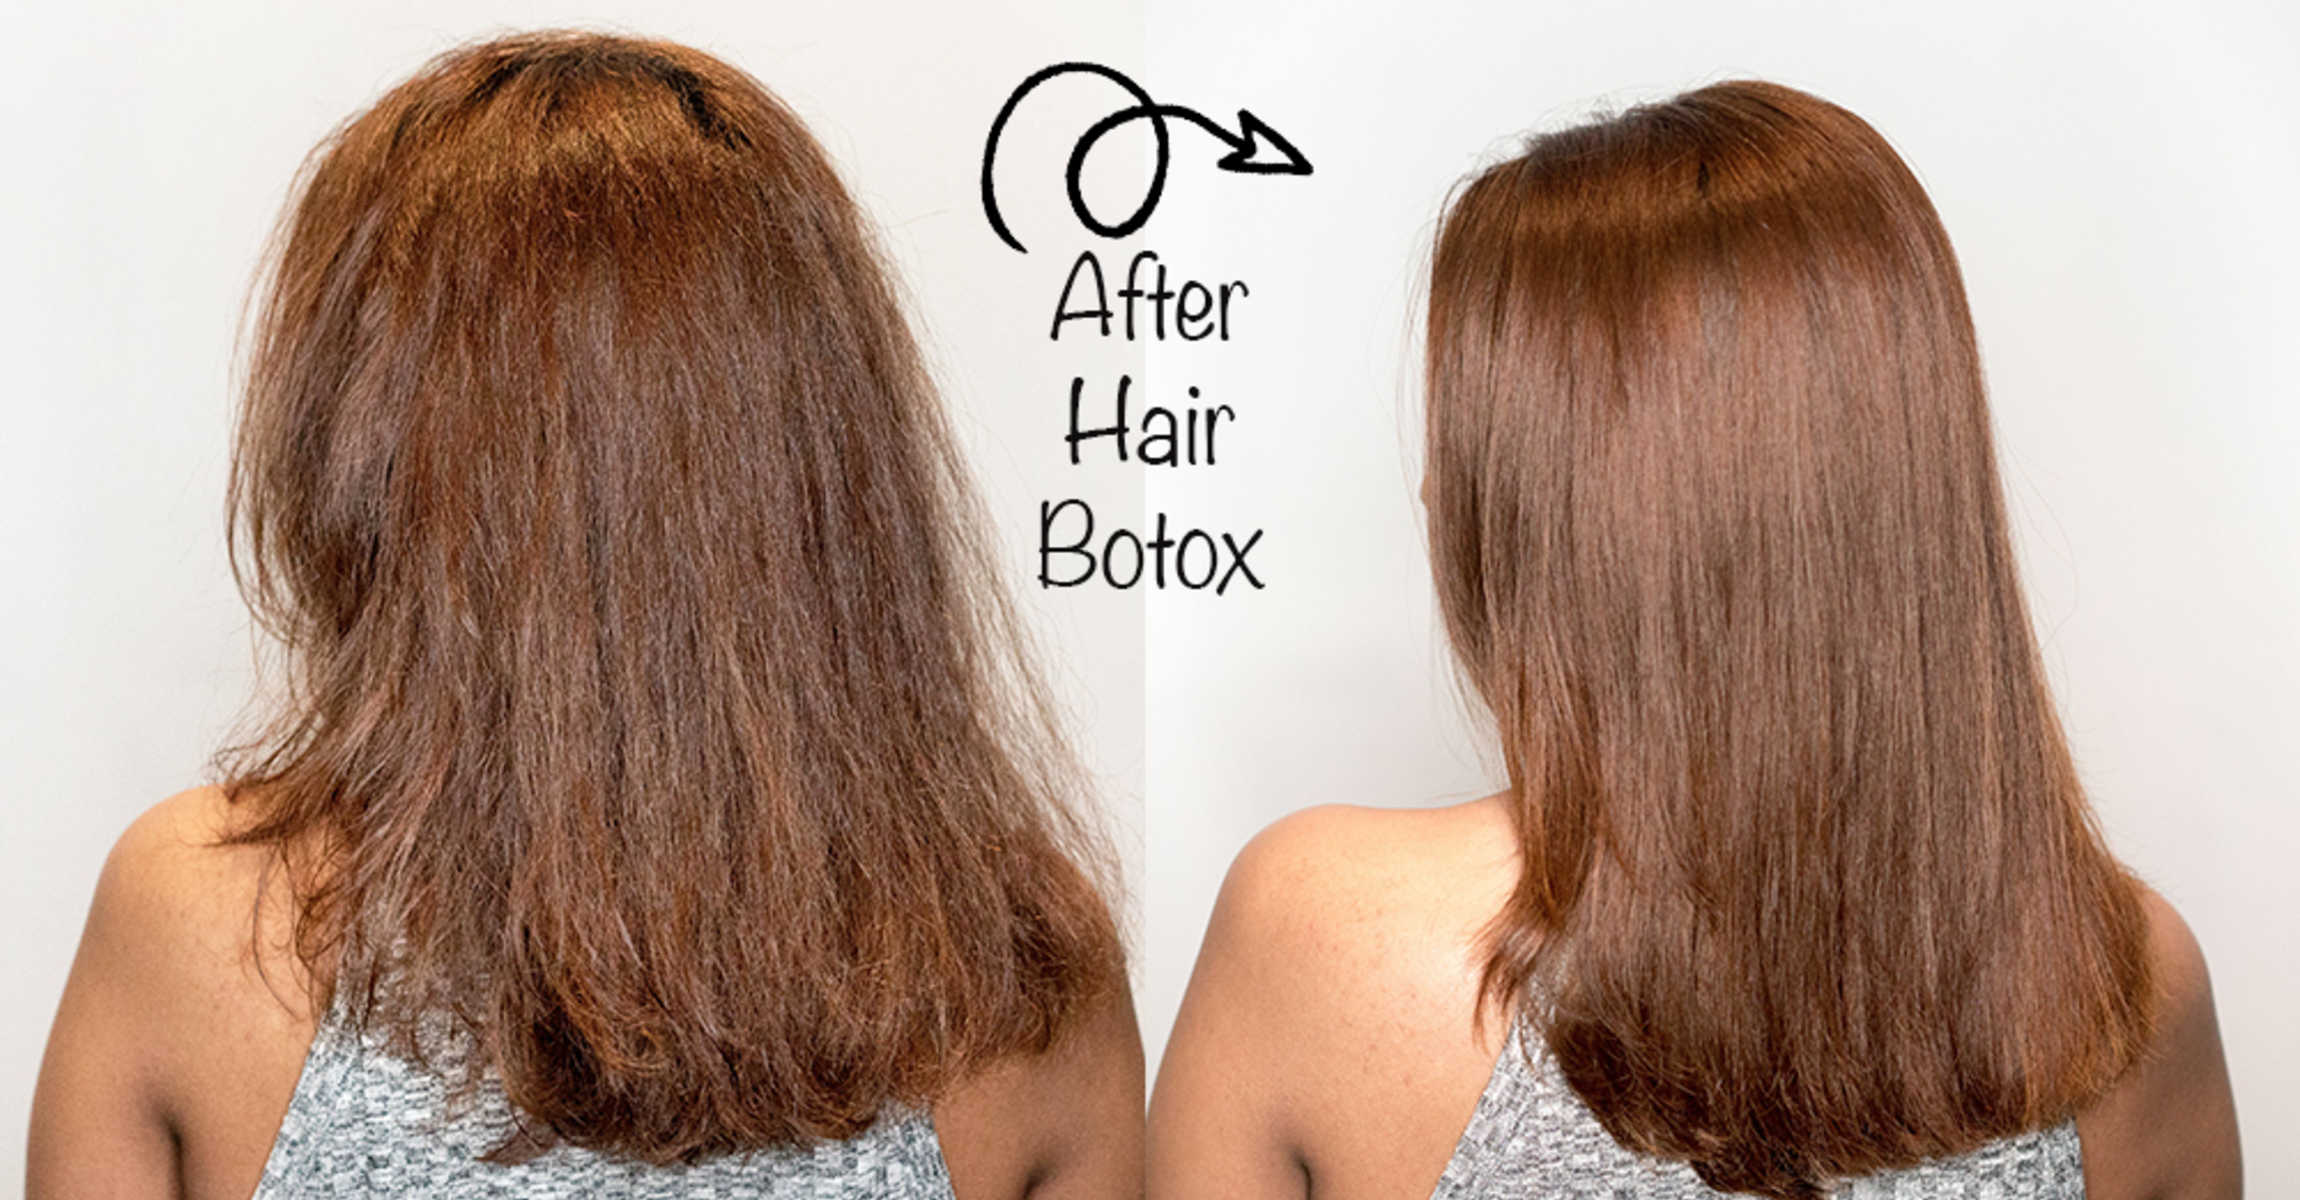 This Hair Botox Can Revive Even The Most Damaged Hair